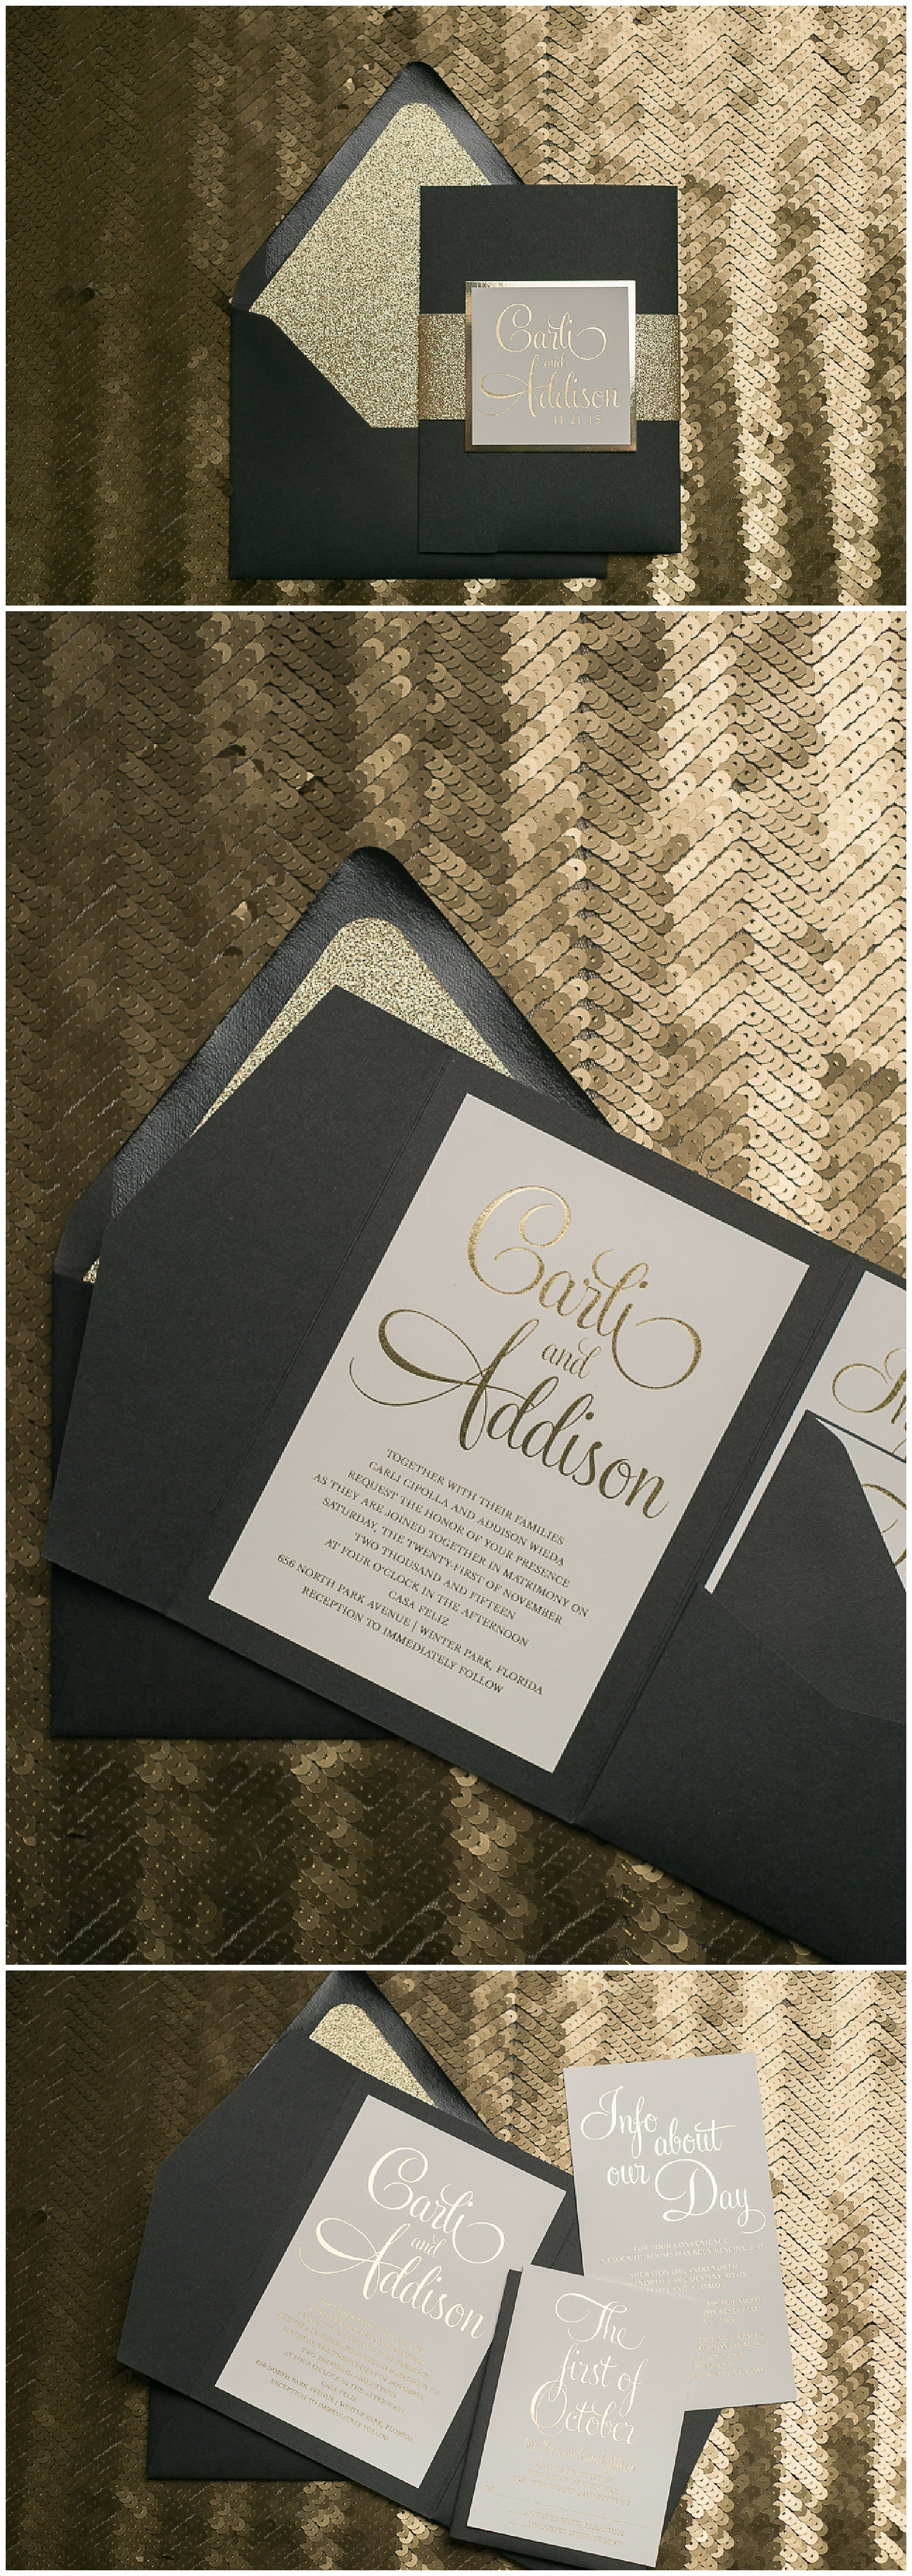 Glamour Wedding Invitations, Gold Foil, Black Tie, Gold and Black, Trending, Formal, Bailey Suite, Just Invite Me